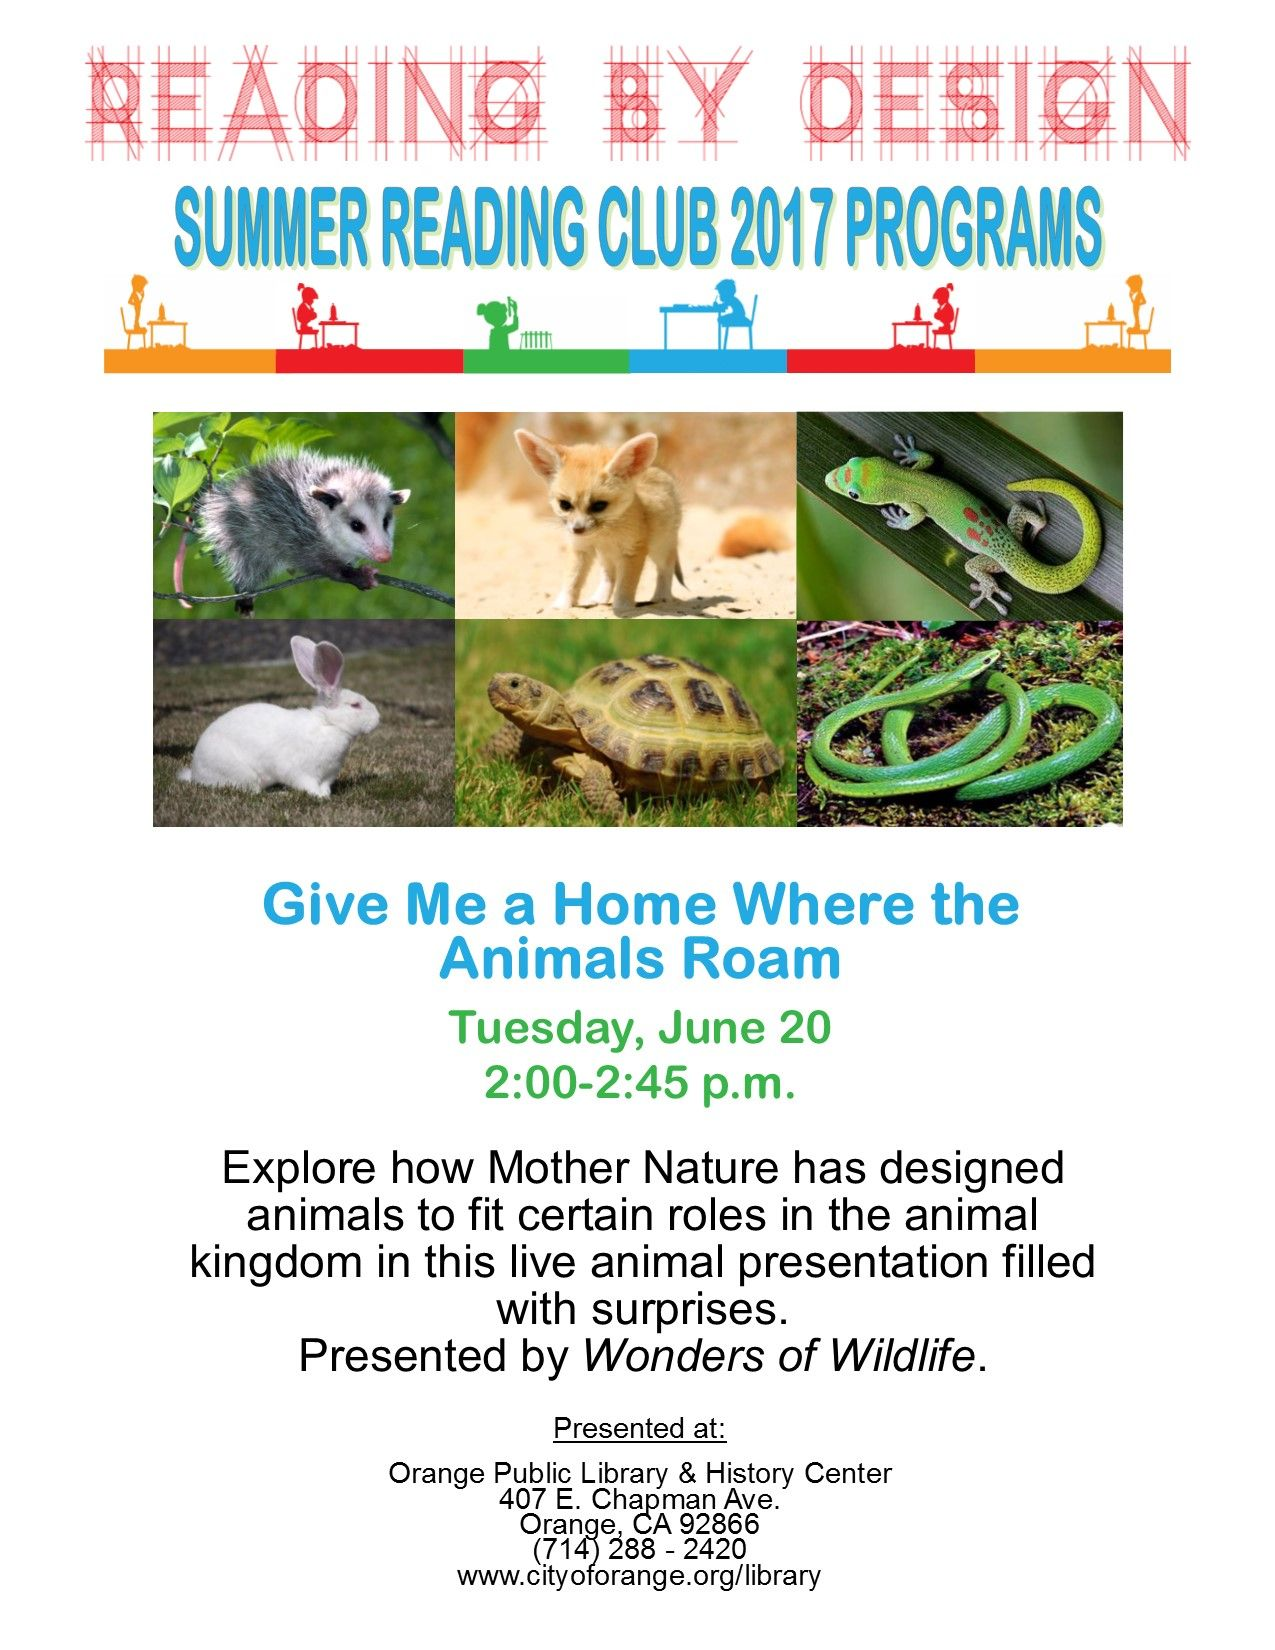 Pin By Orange Public Library History Center On Past Programs Live Animals Wildlife Animal Kingdom